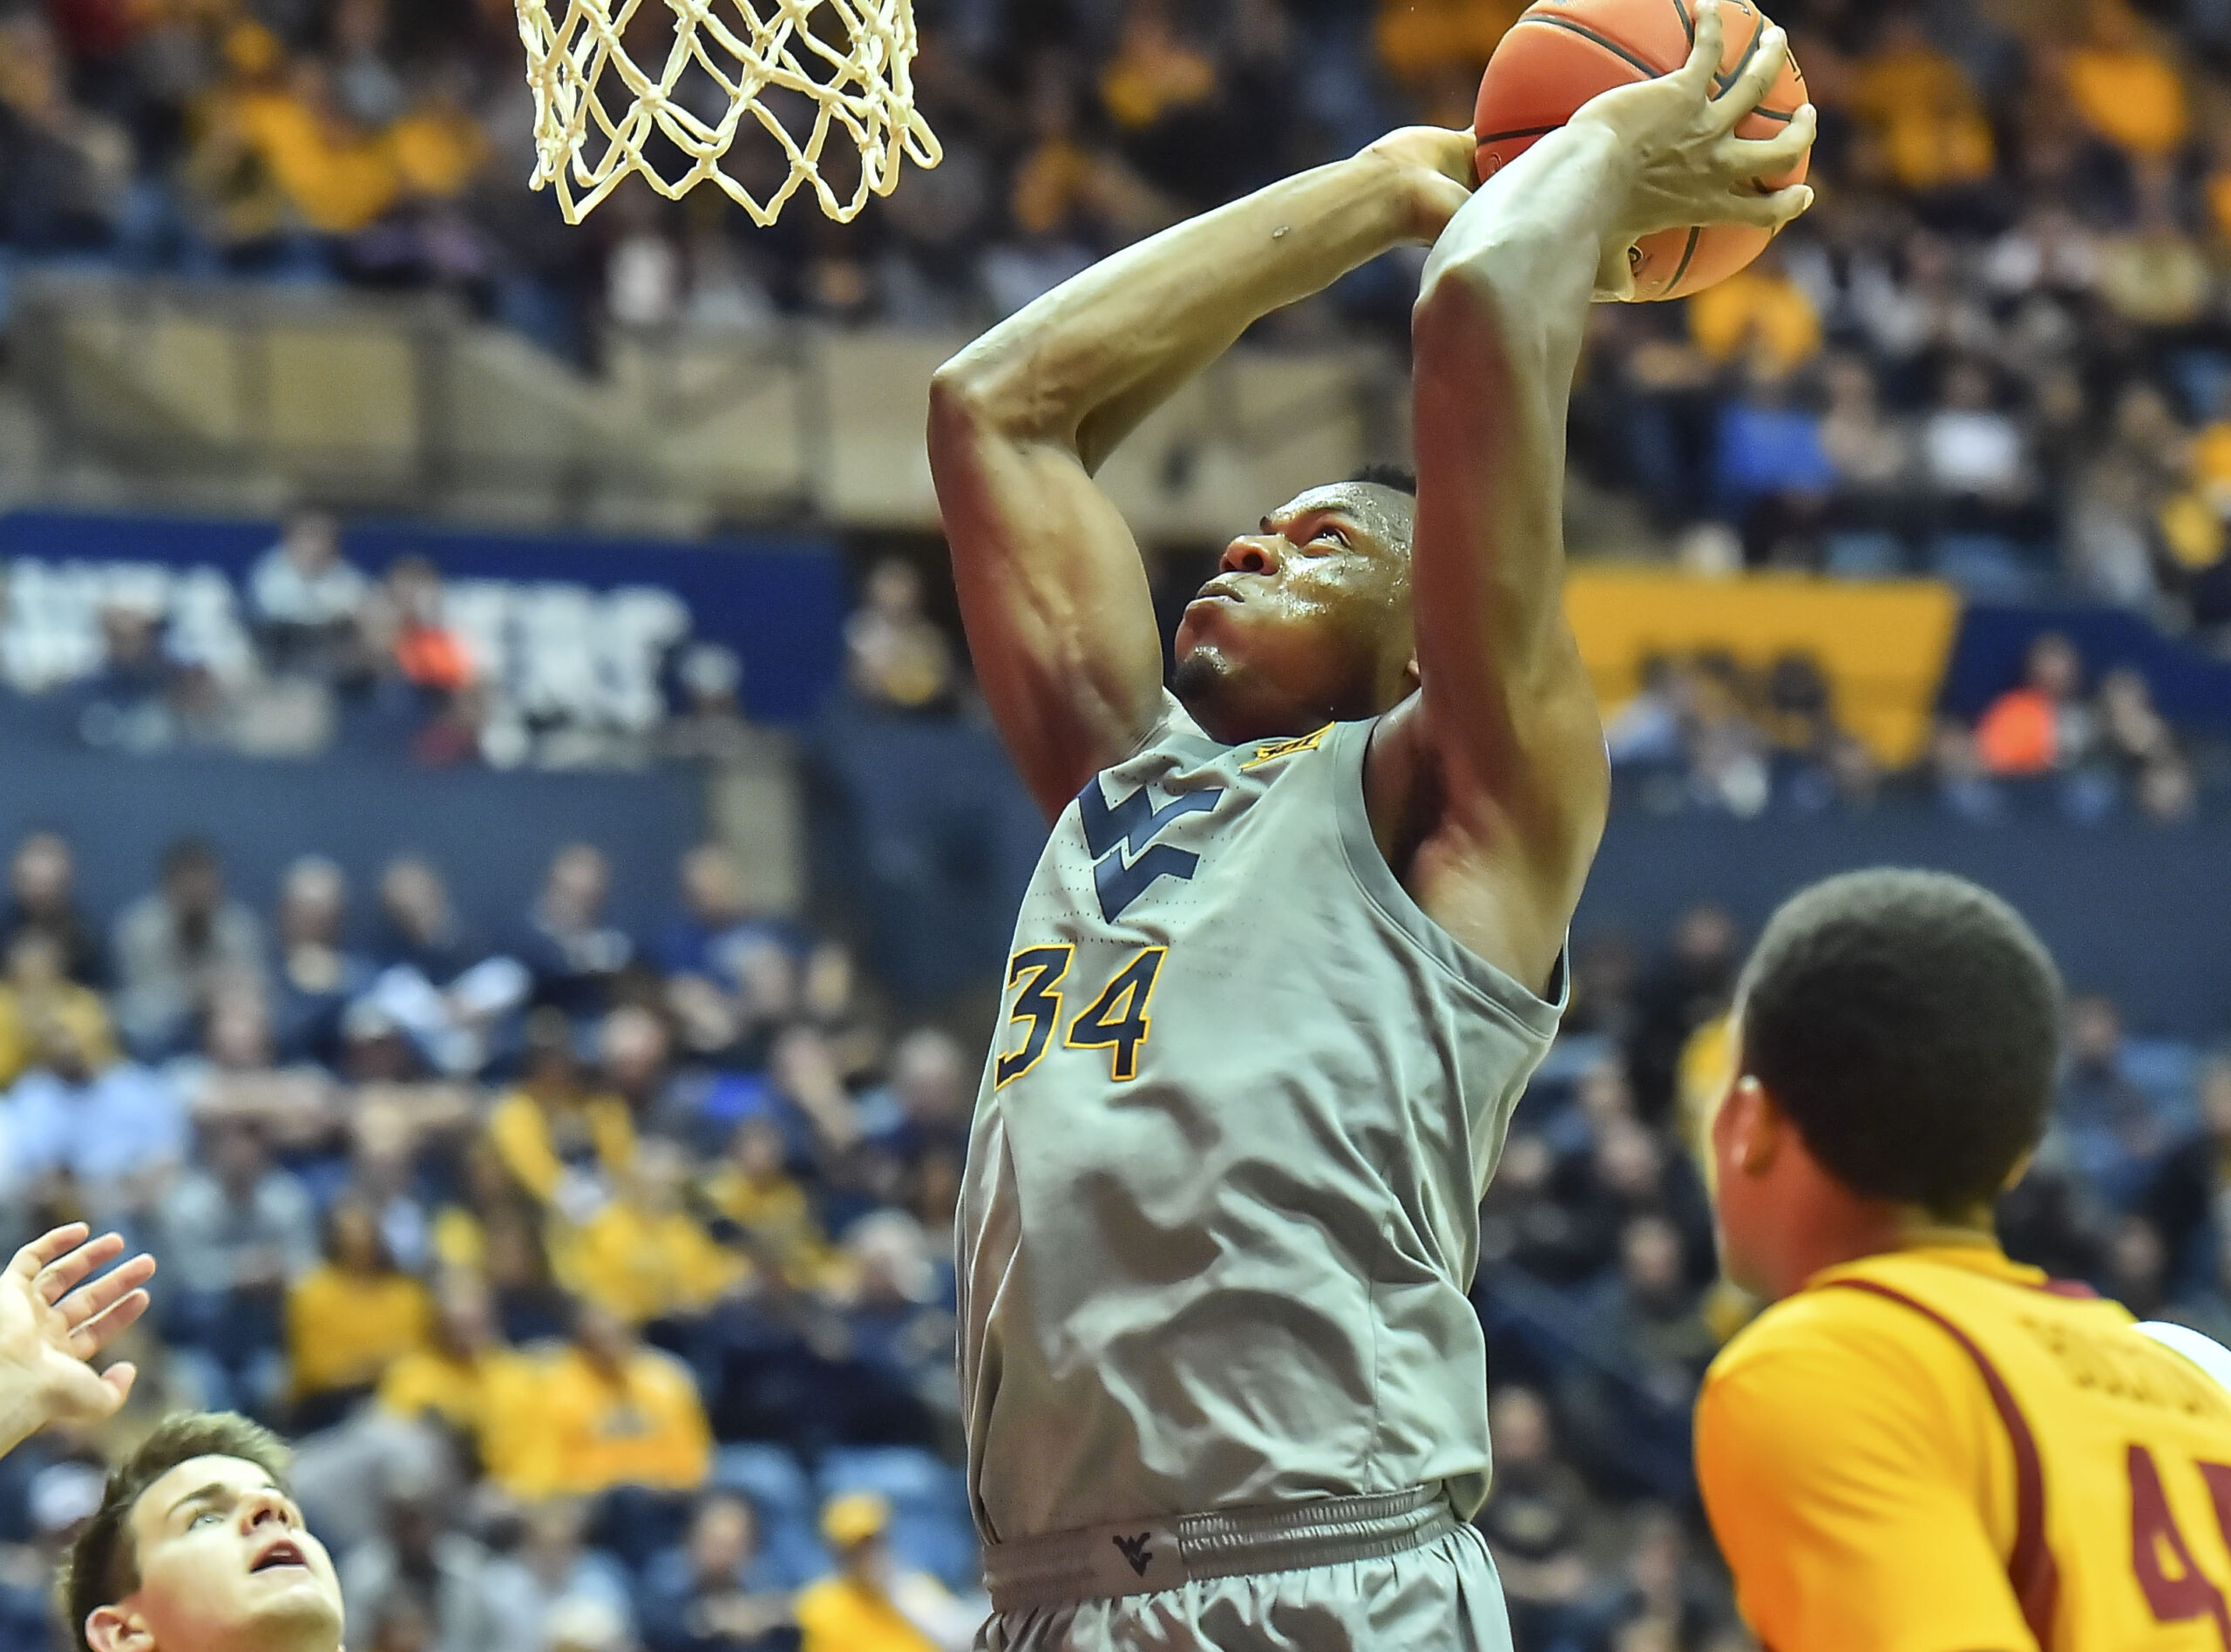 Oscar Tshiebwe could potentially be a first round pick in the 2020 NBA Draft.  (Photo: William Wotring/The Dominion Post.)